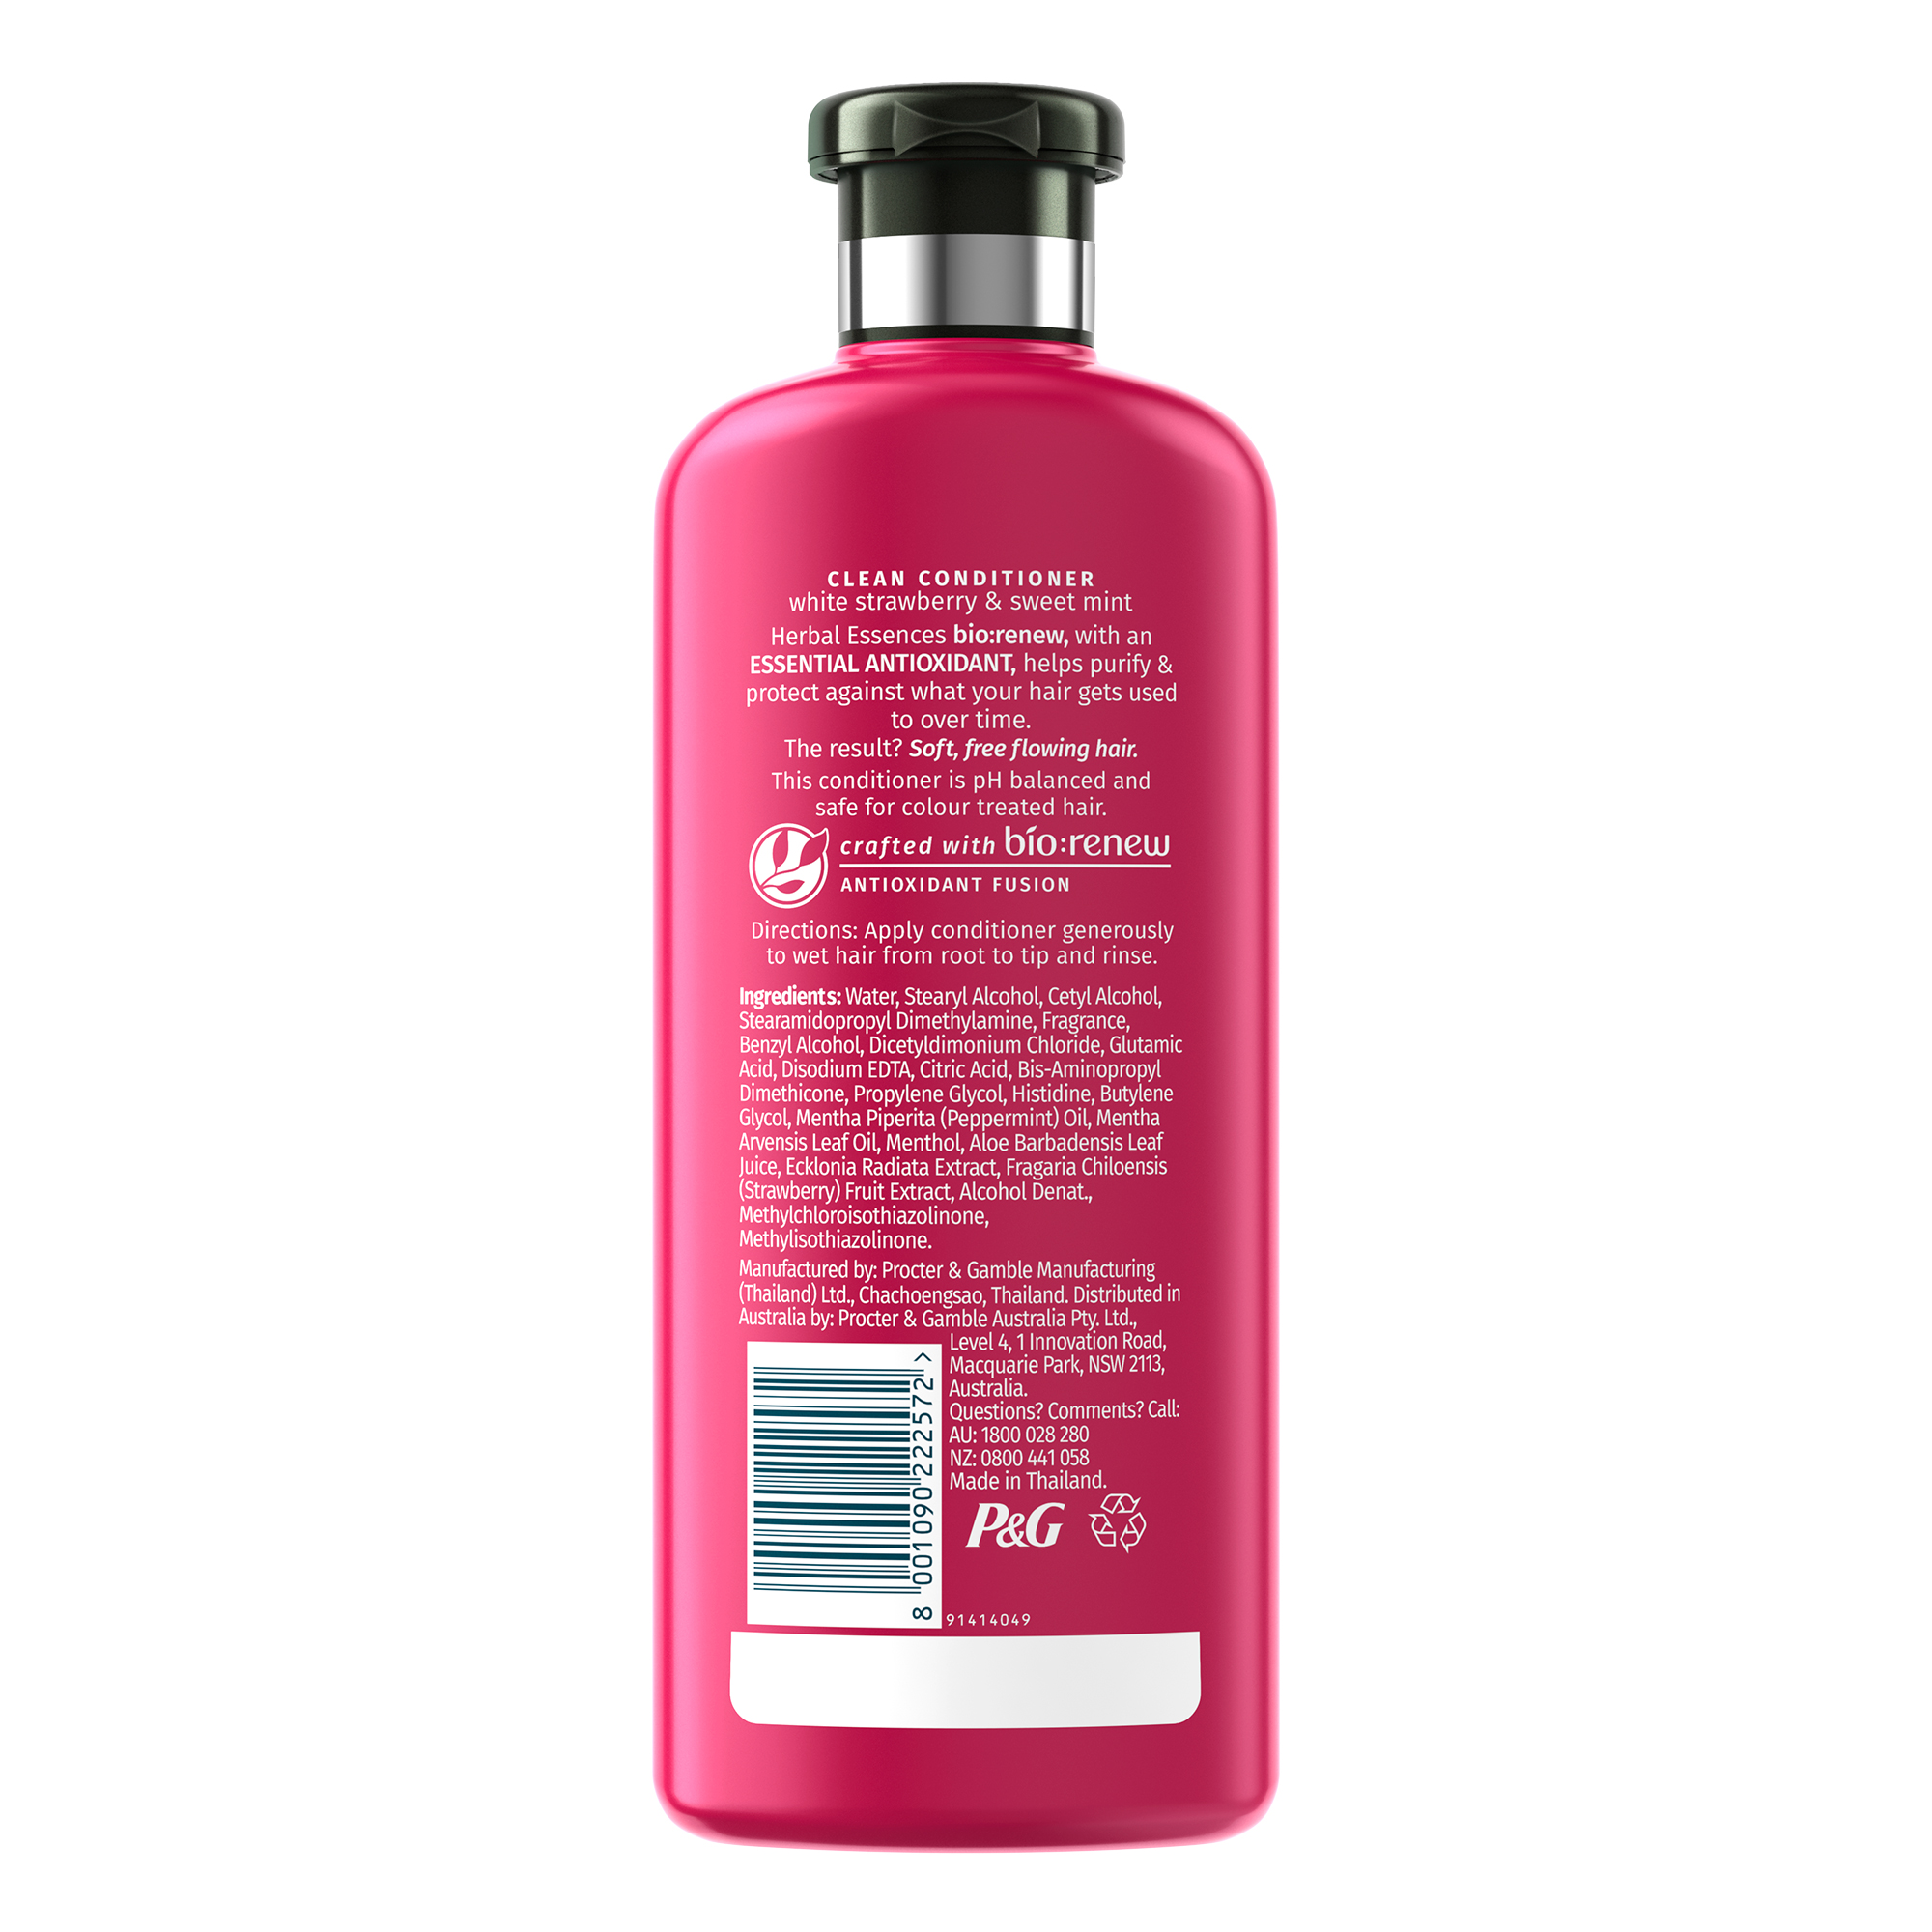 Bio:Renew White Strawberry & Sweet Mint Conditioner, 400Ml | No Parabens No Colourants